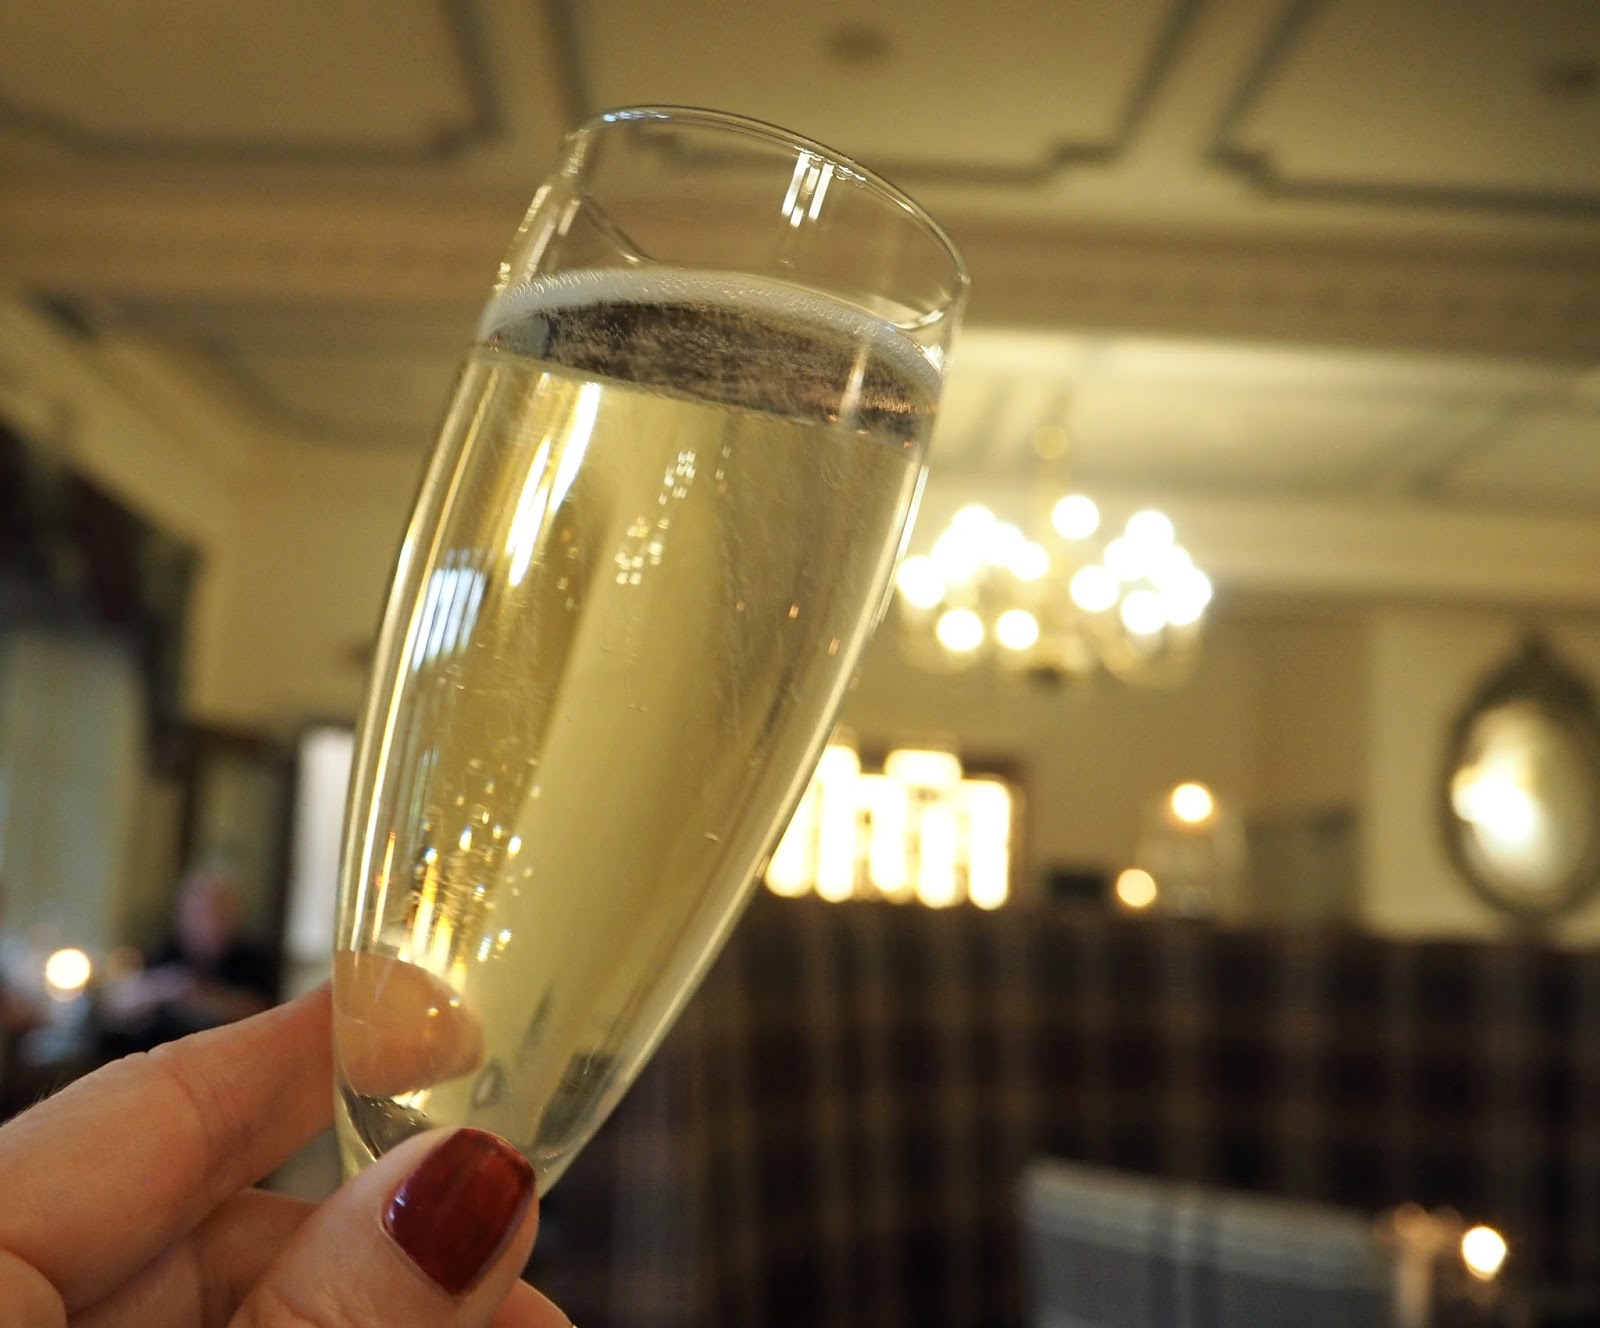 Prime restaurant, Stirk House, Gisburn, prosecco and dinner